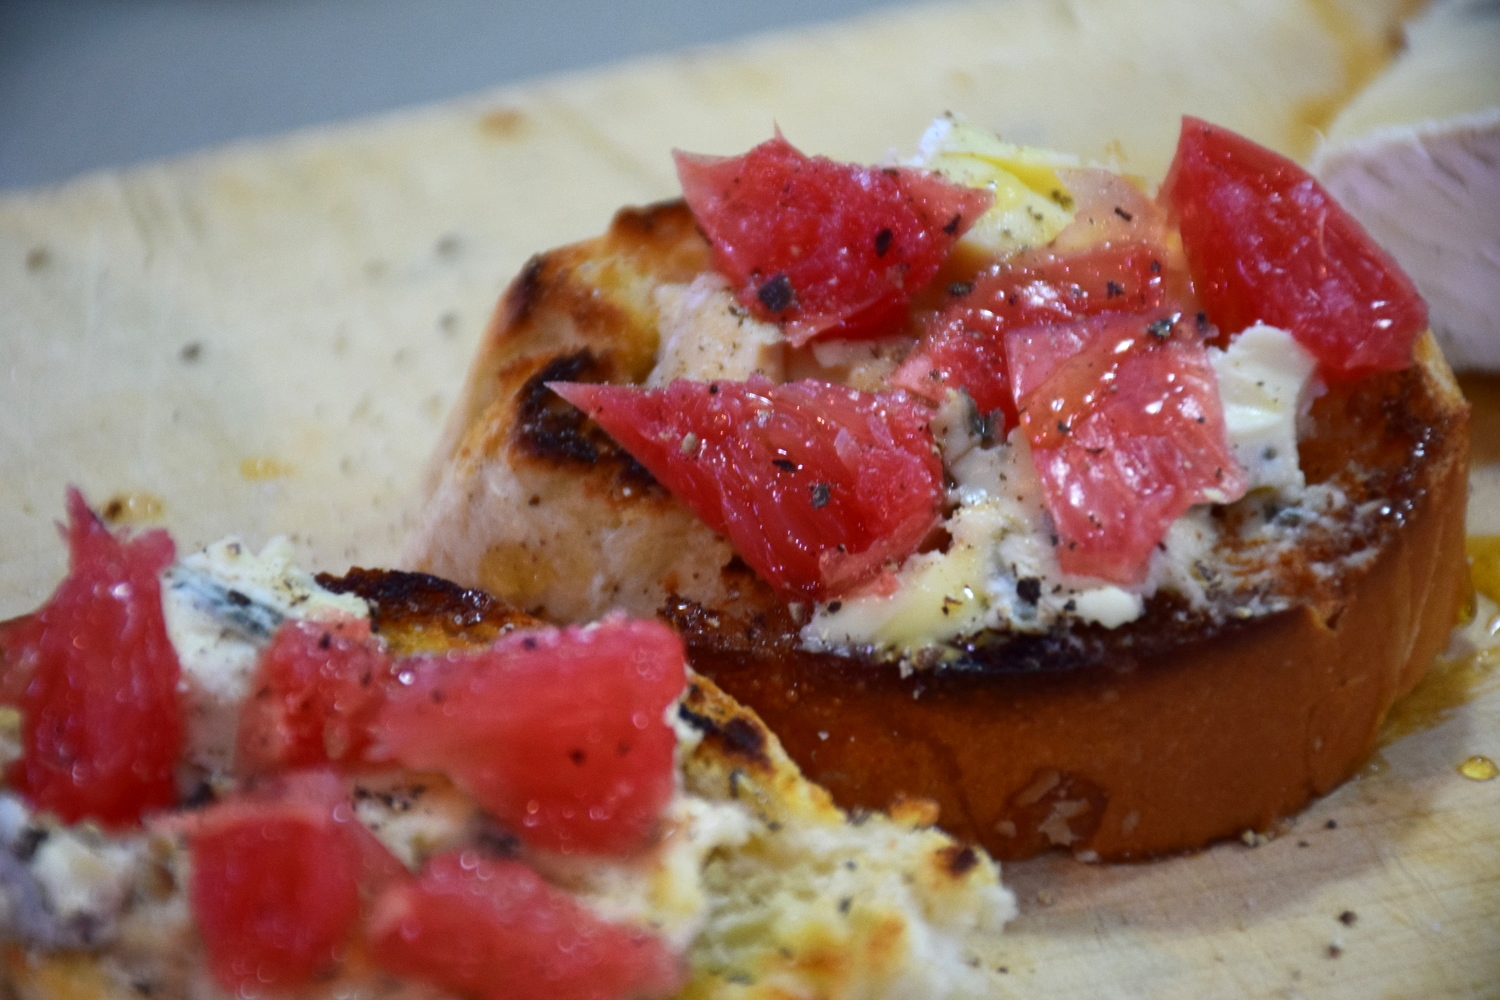 blue cheese and grapefruit croistini 9.jpg